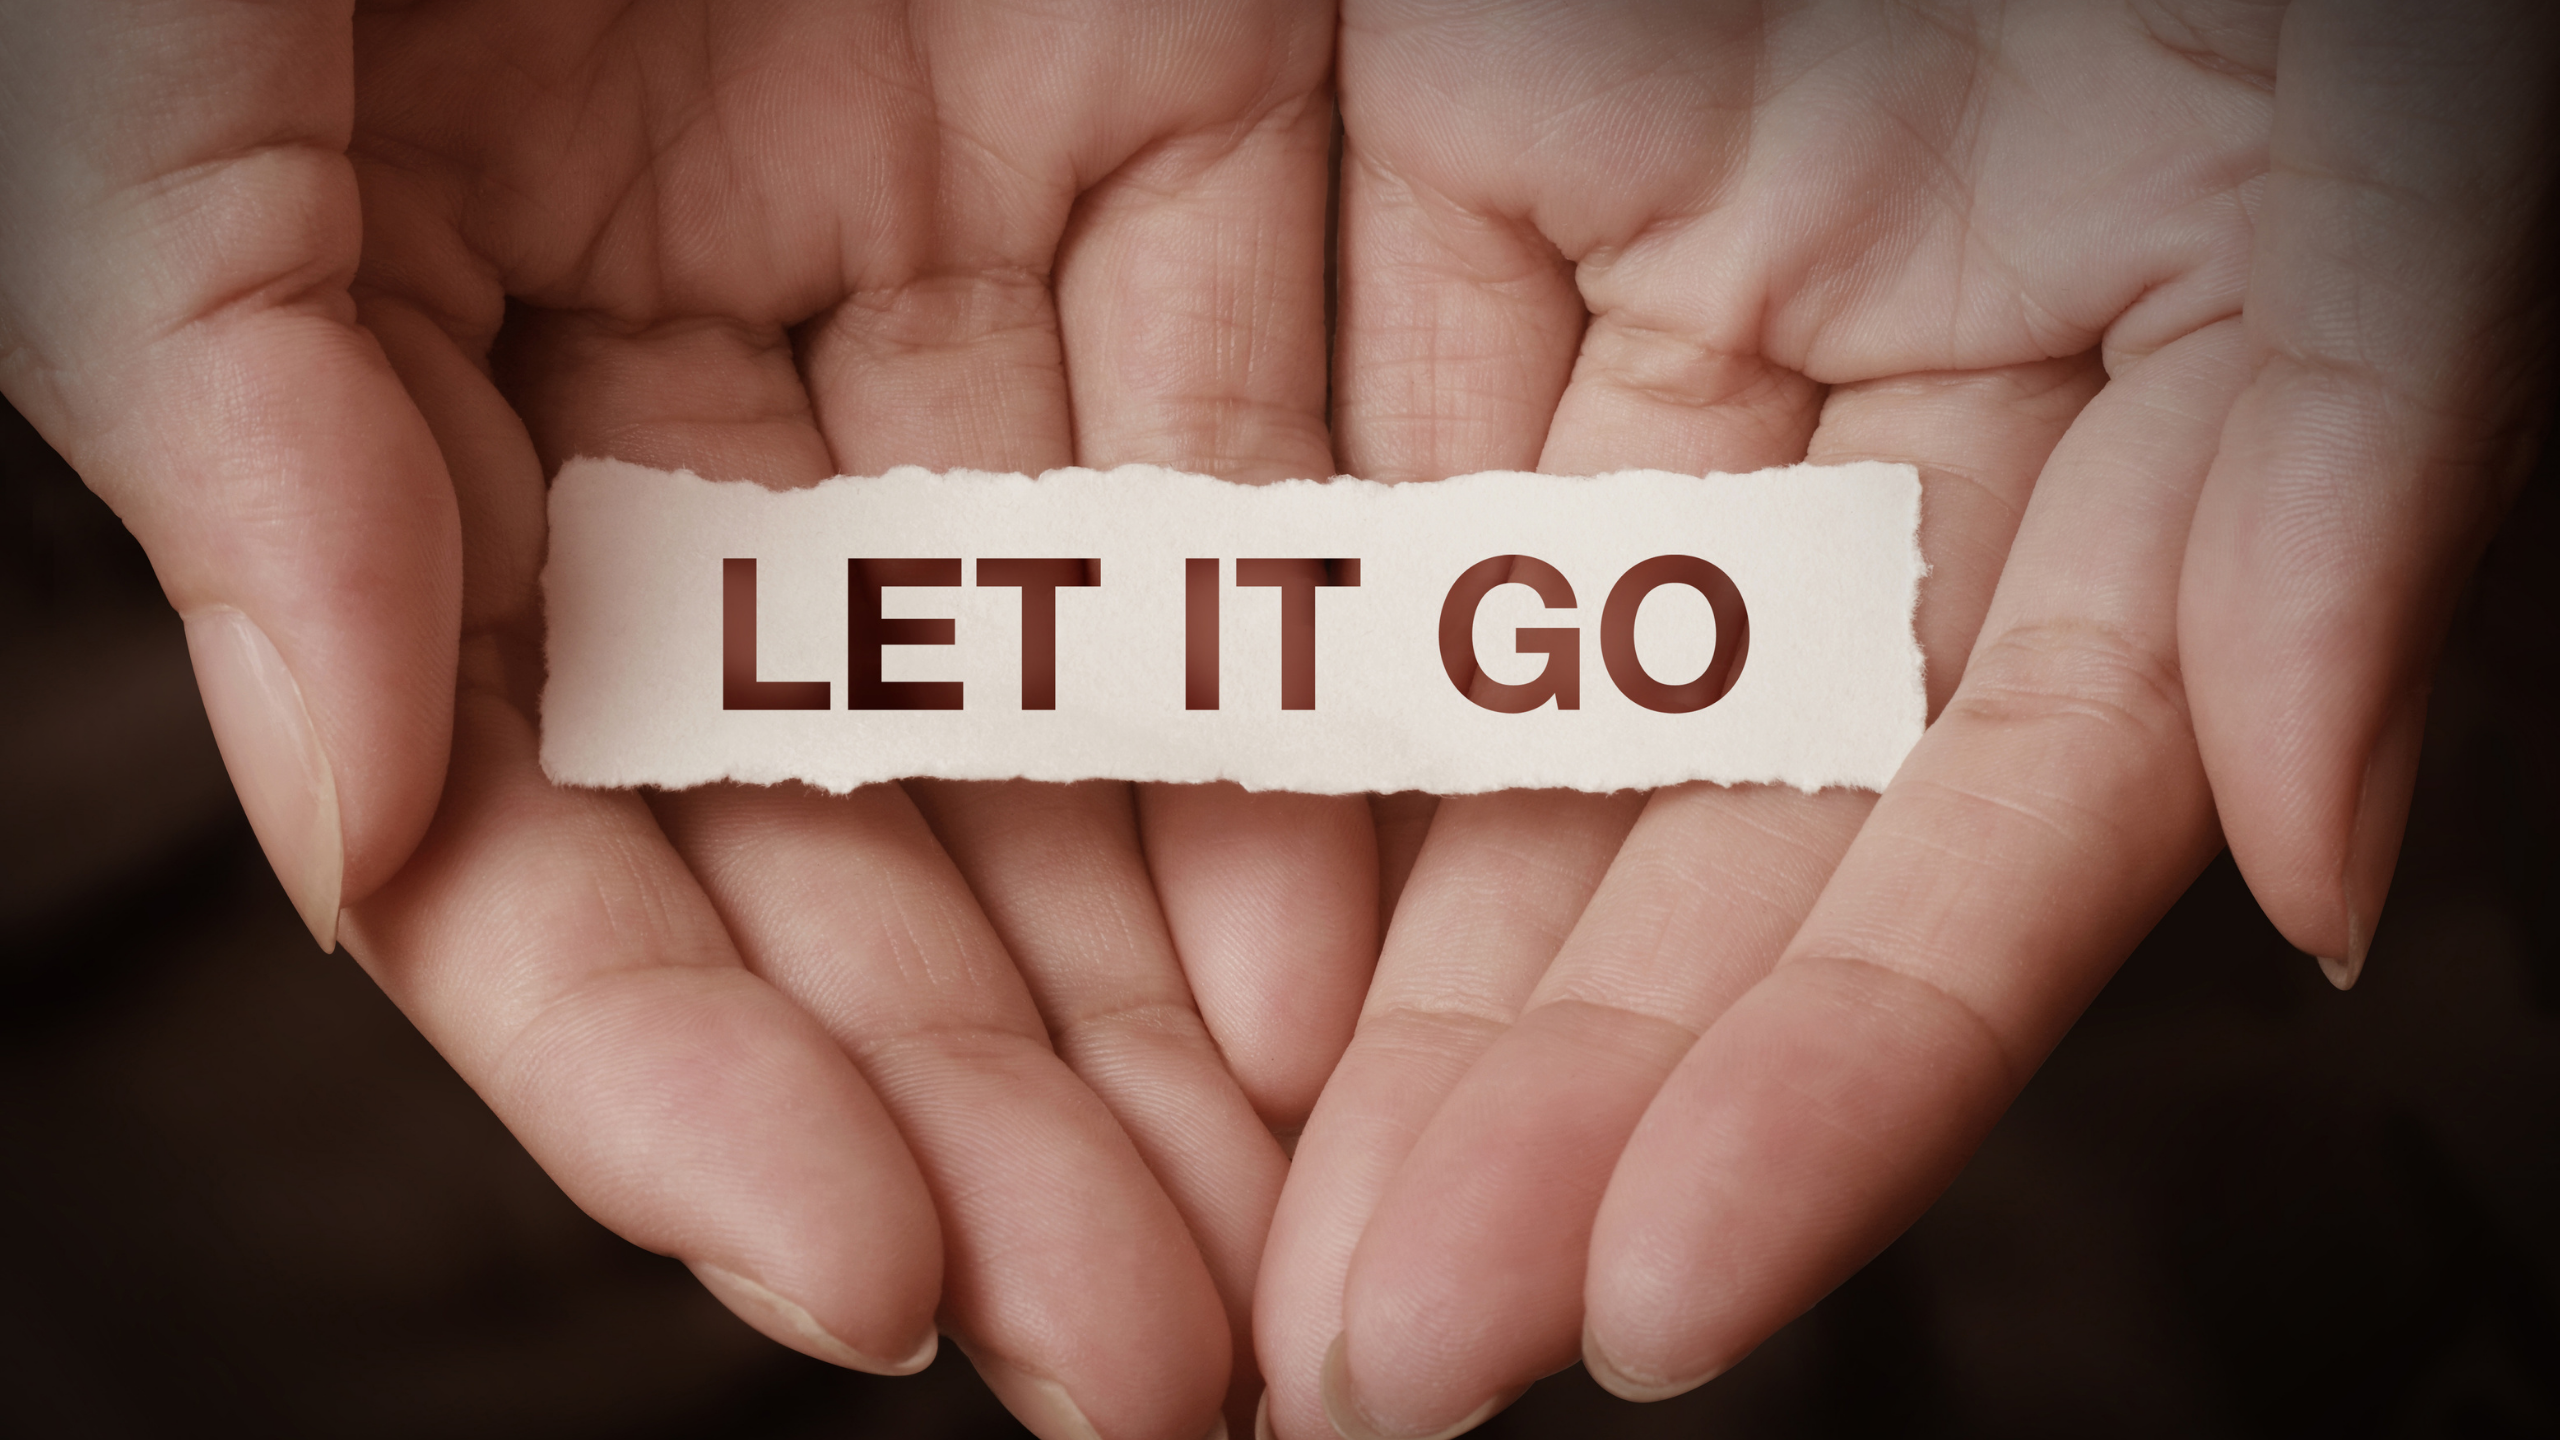 How To Let Go Of The Hurt